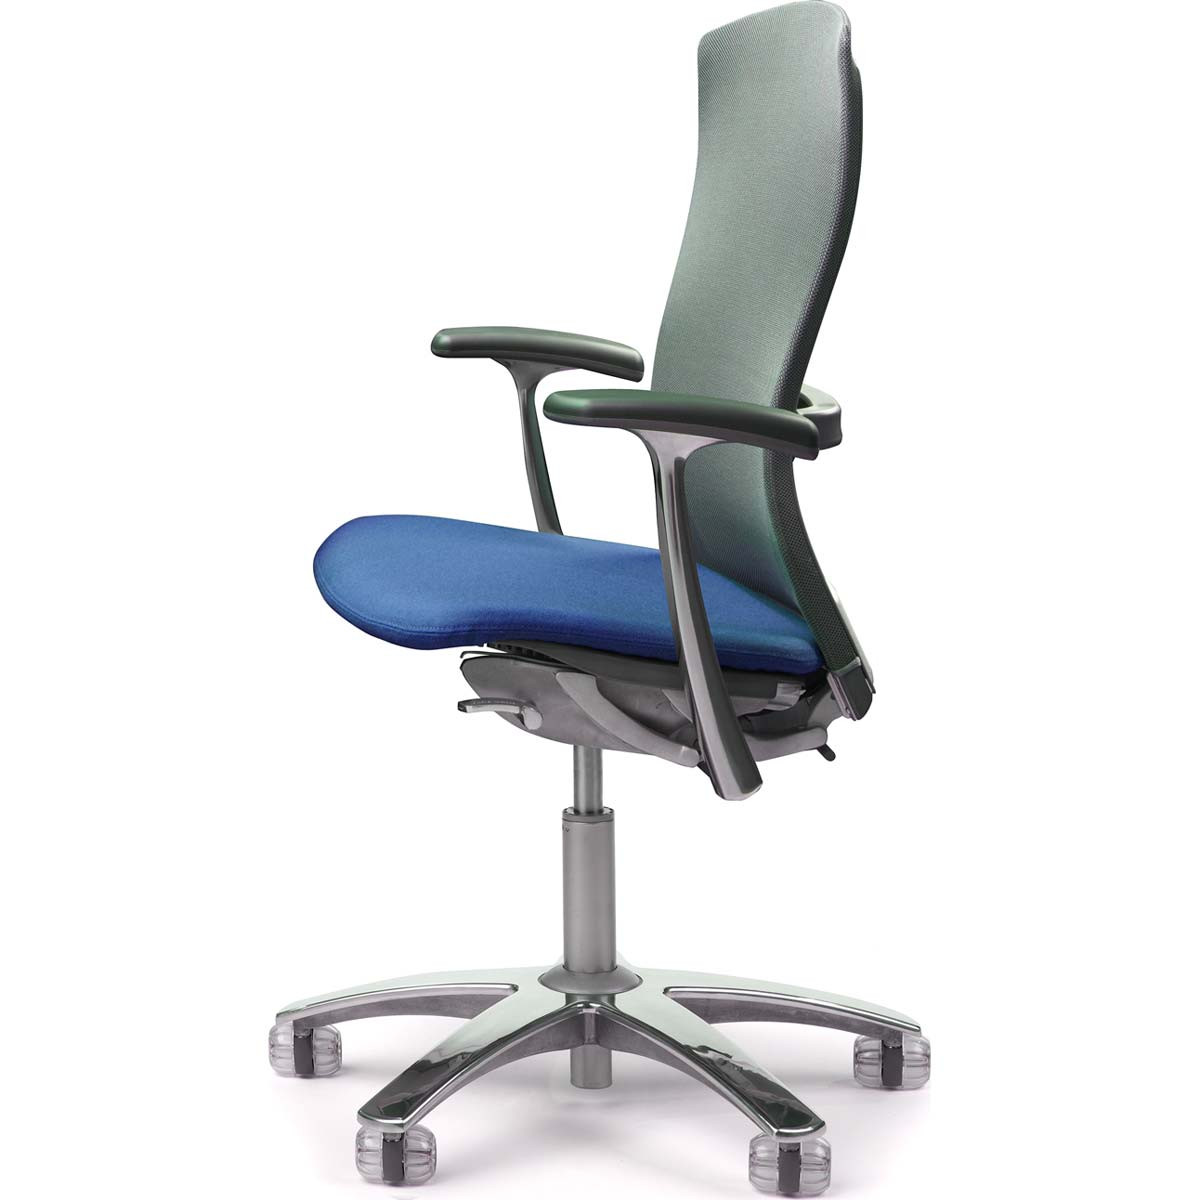 The Knoll Life Chair Shop Ergonomic Chairs